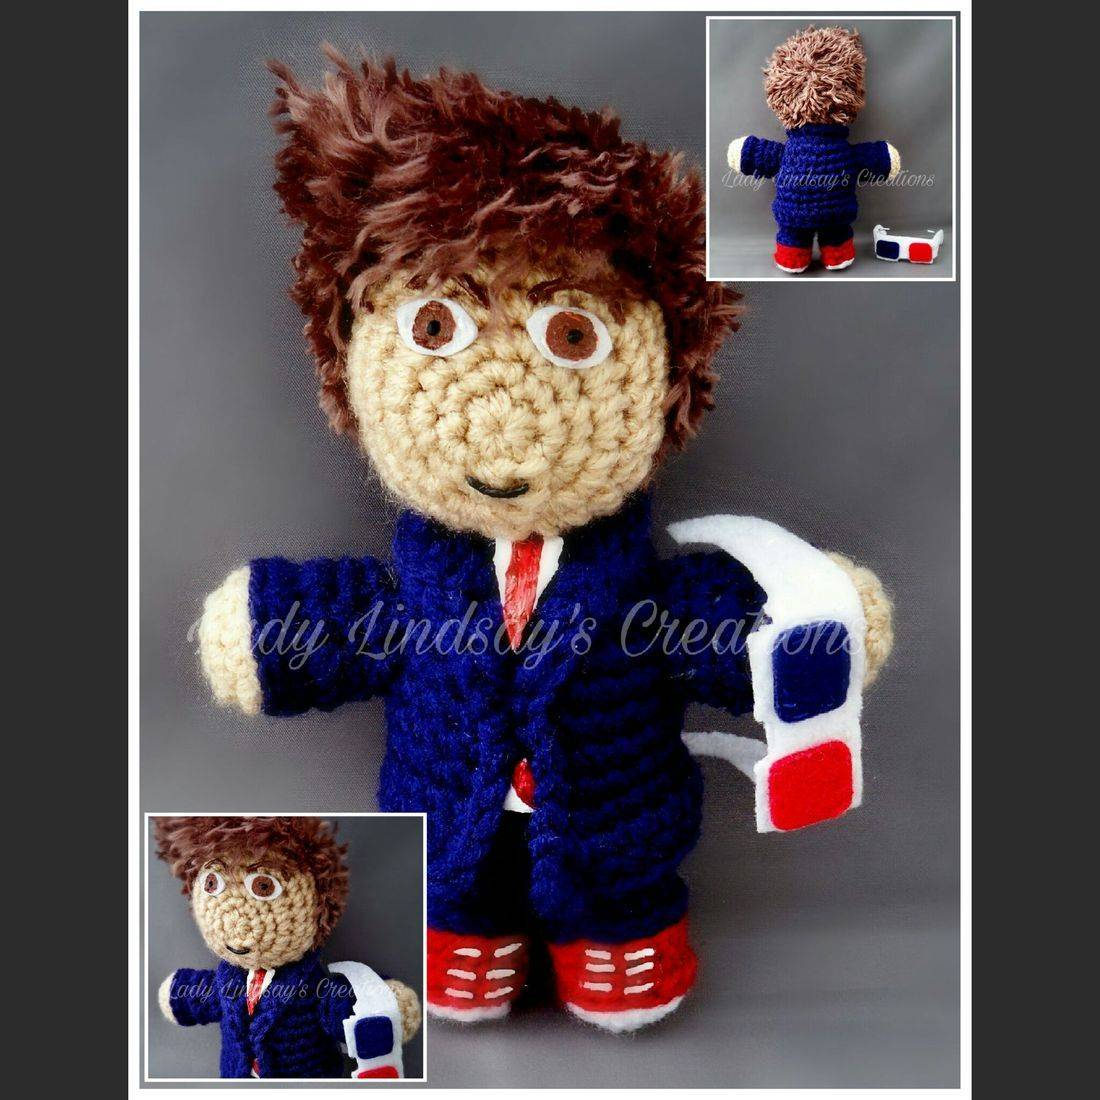 David Tennant, amigurumi, 3D Glasses, plush, doll, Doctor Who,  10th Doctor, nerd, geek, comicbook, 3D figure, handmade, etsy, Sonic Screwdriver